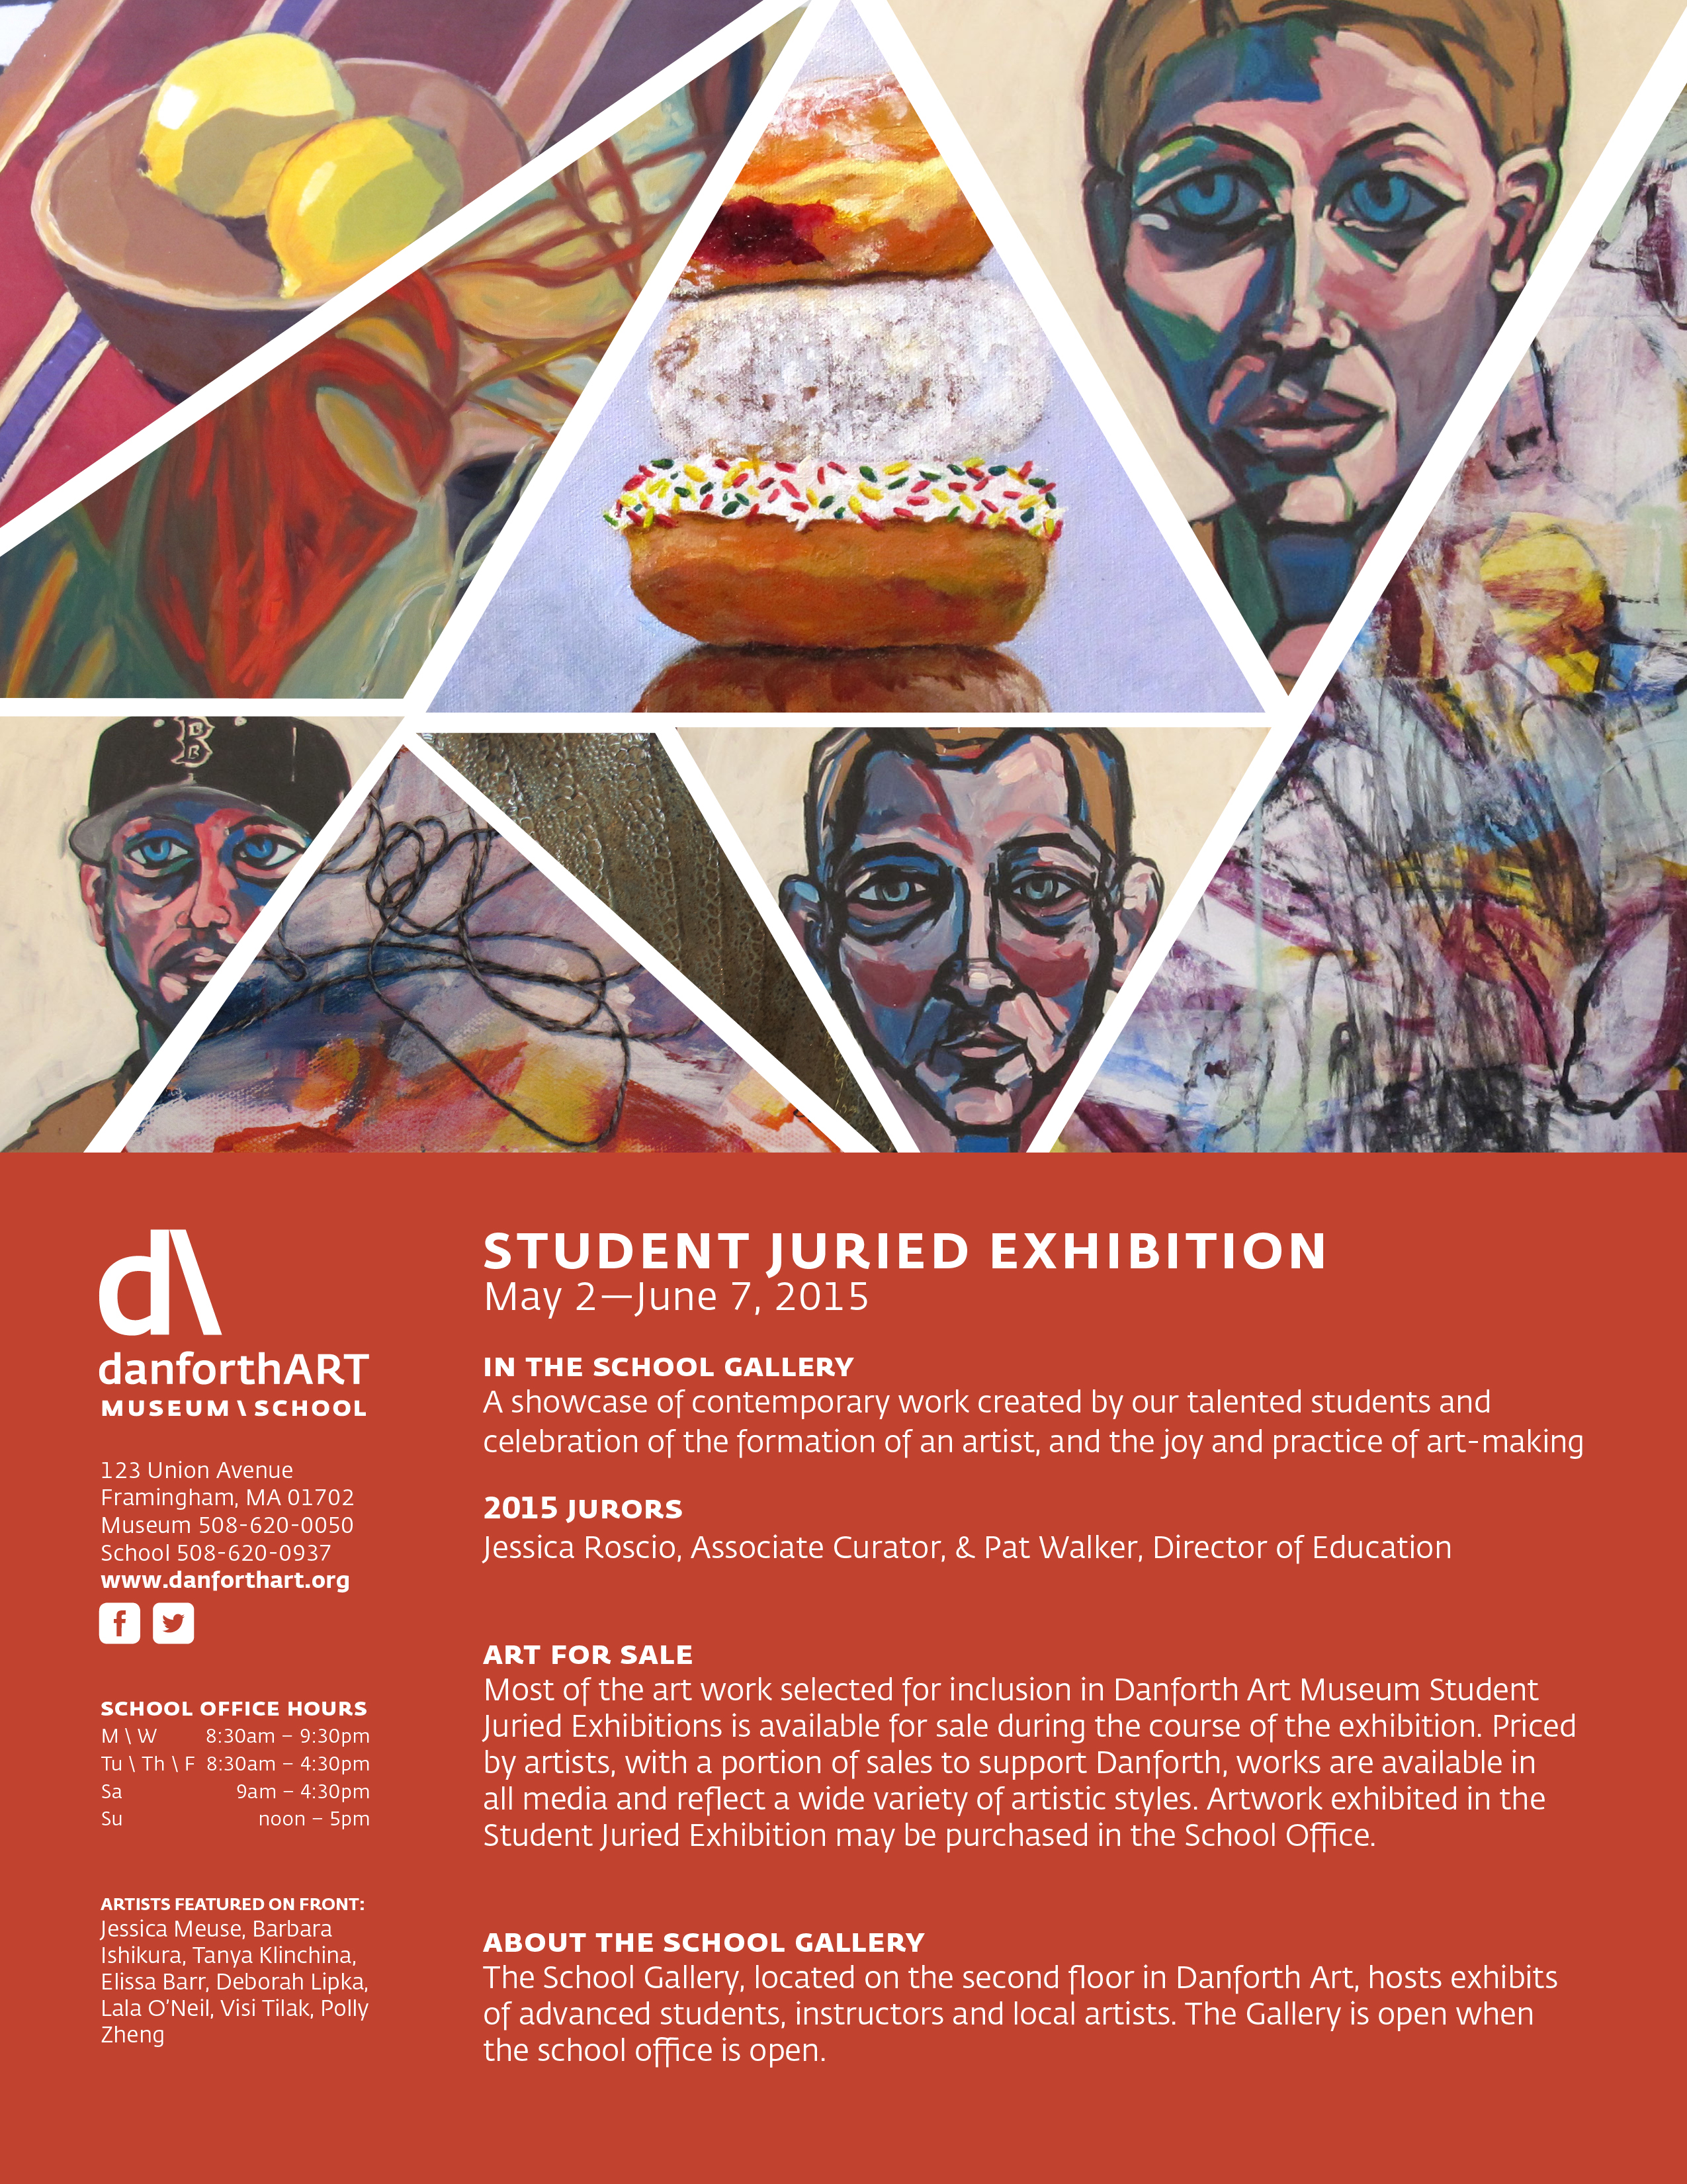 Student Juried Exhibition 2015